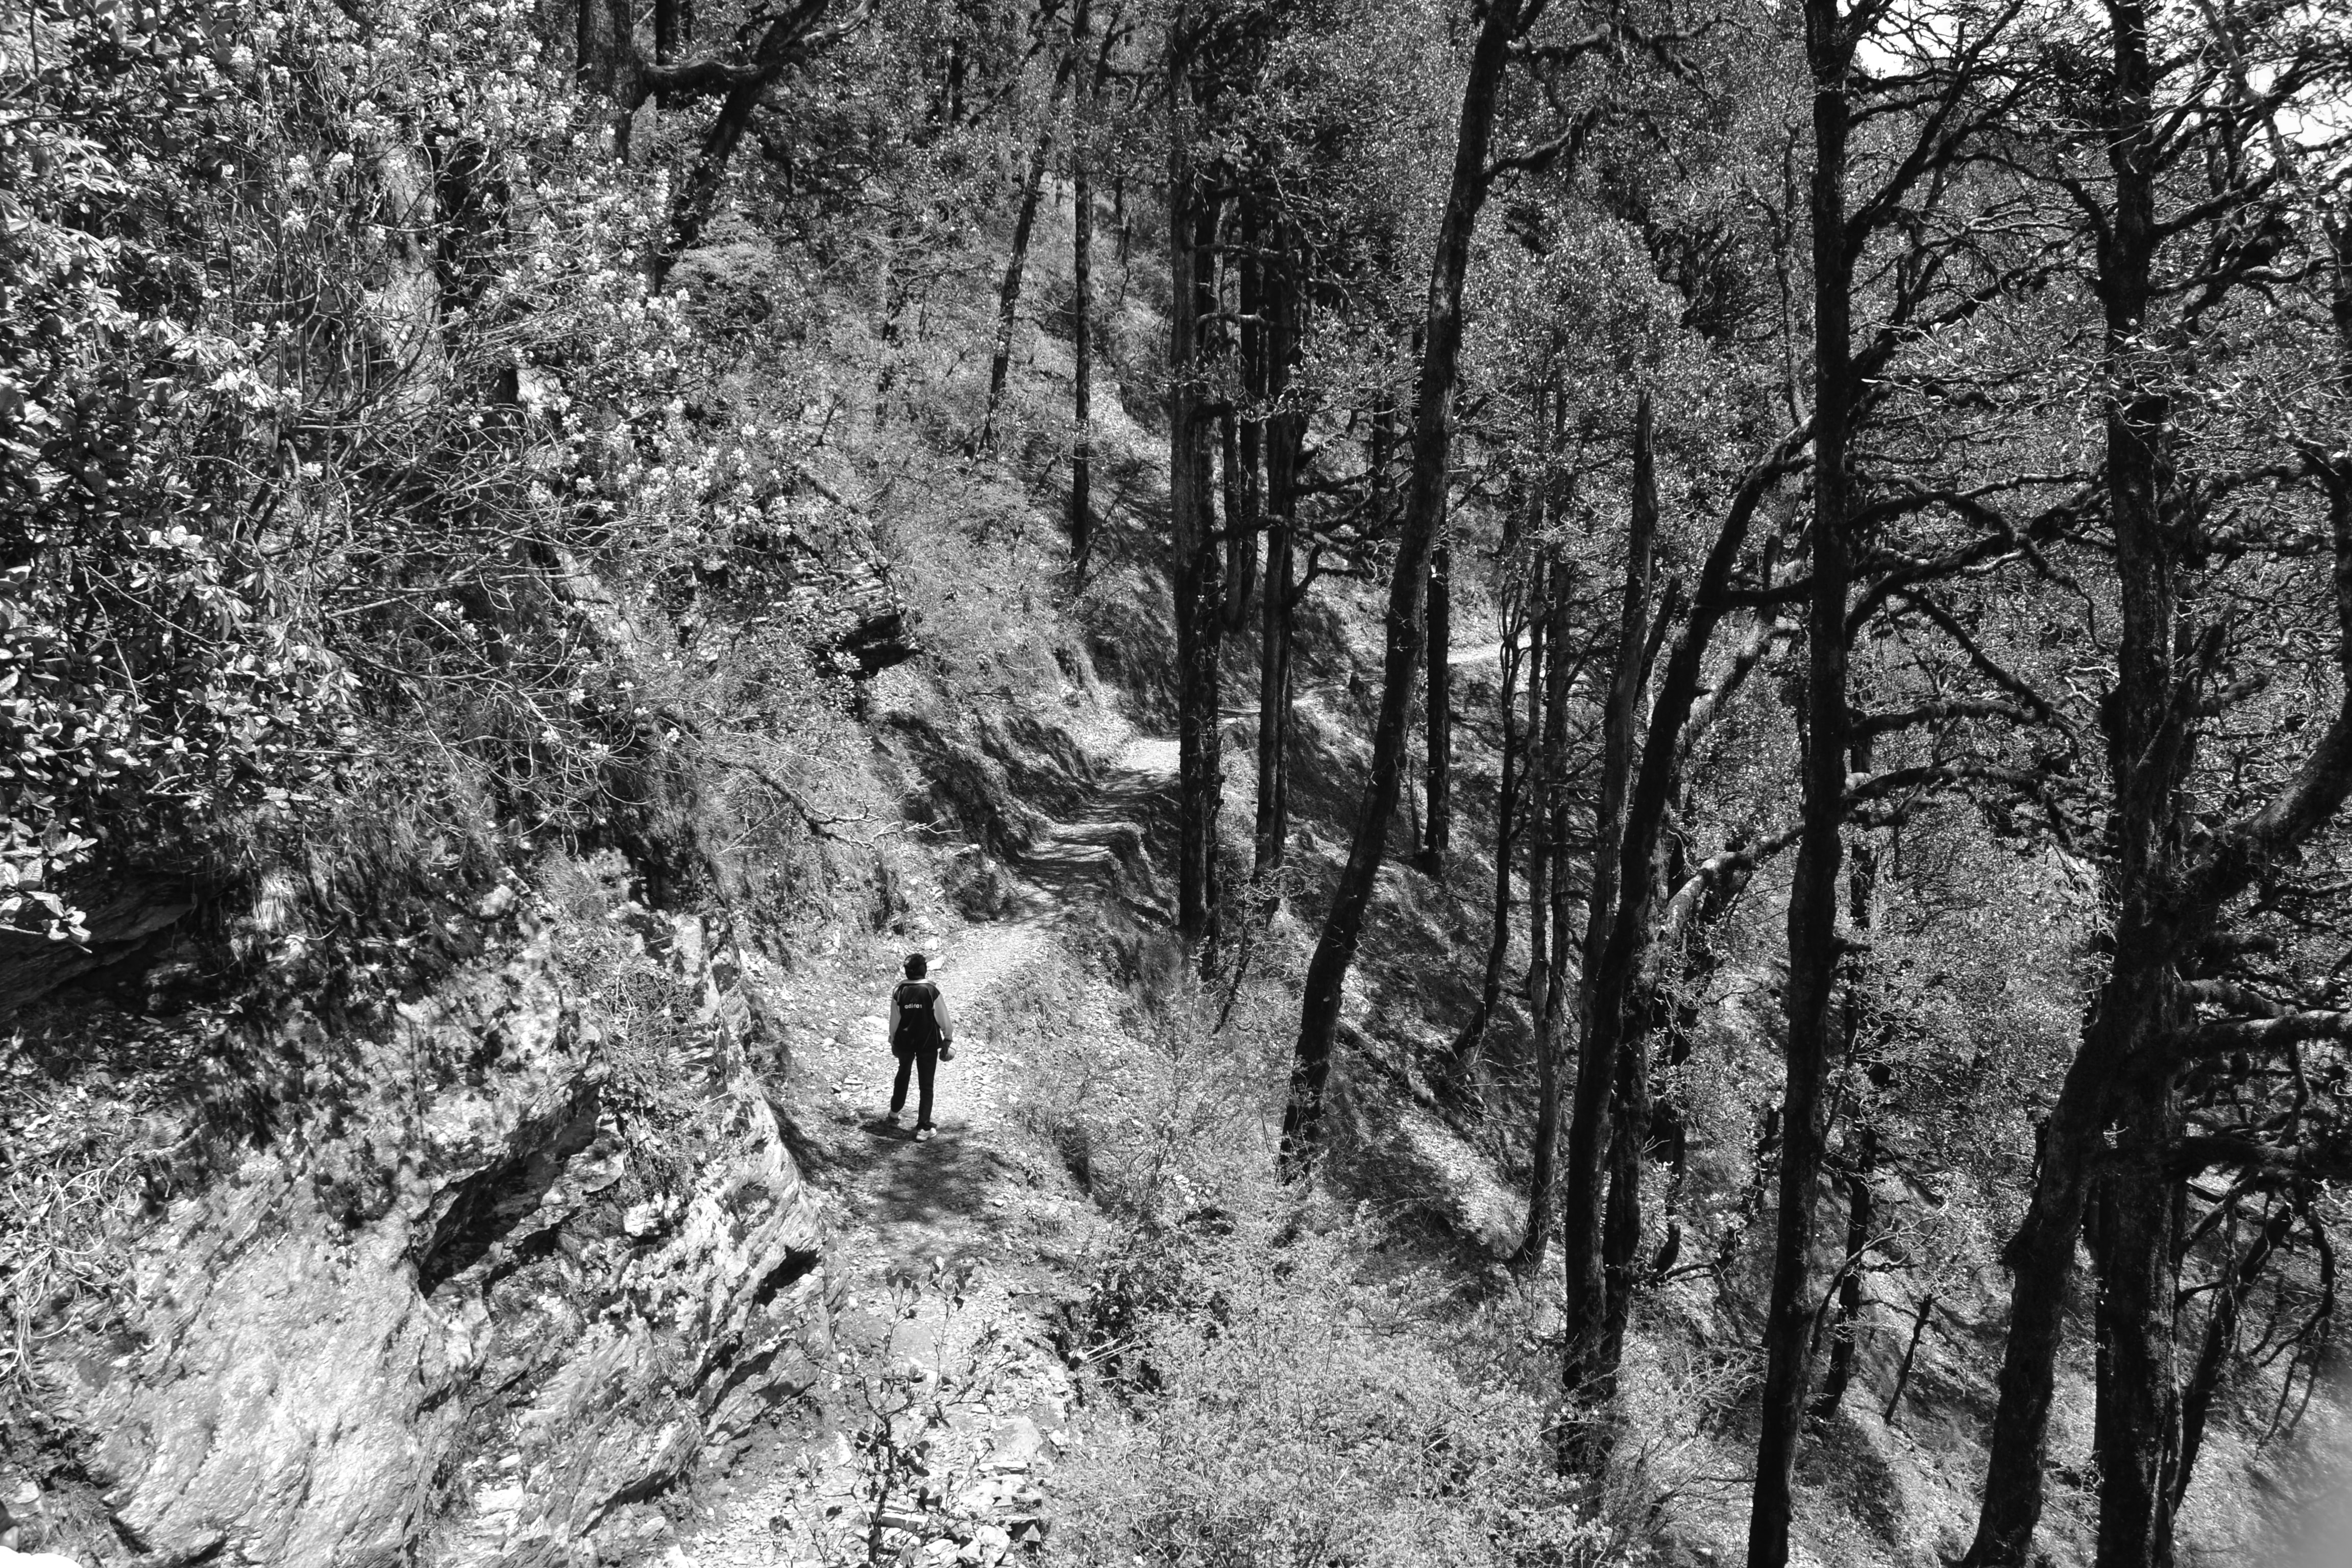 A black-and-white shot of a lone hiker standing on a dirt trail on a wooded slope